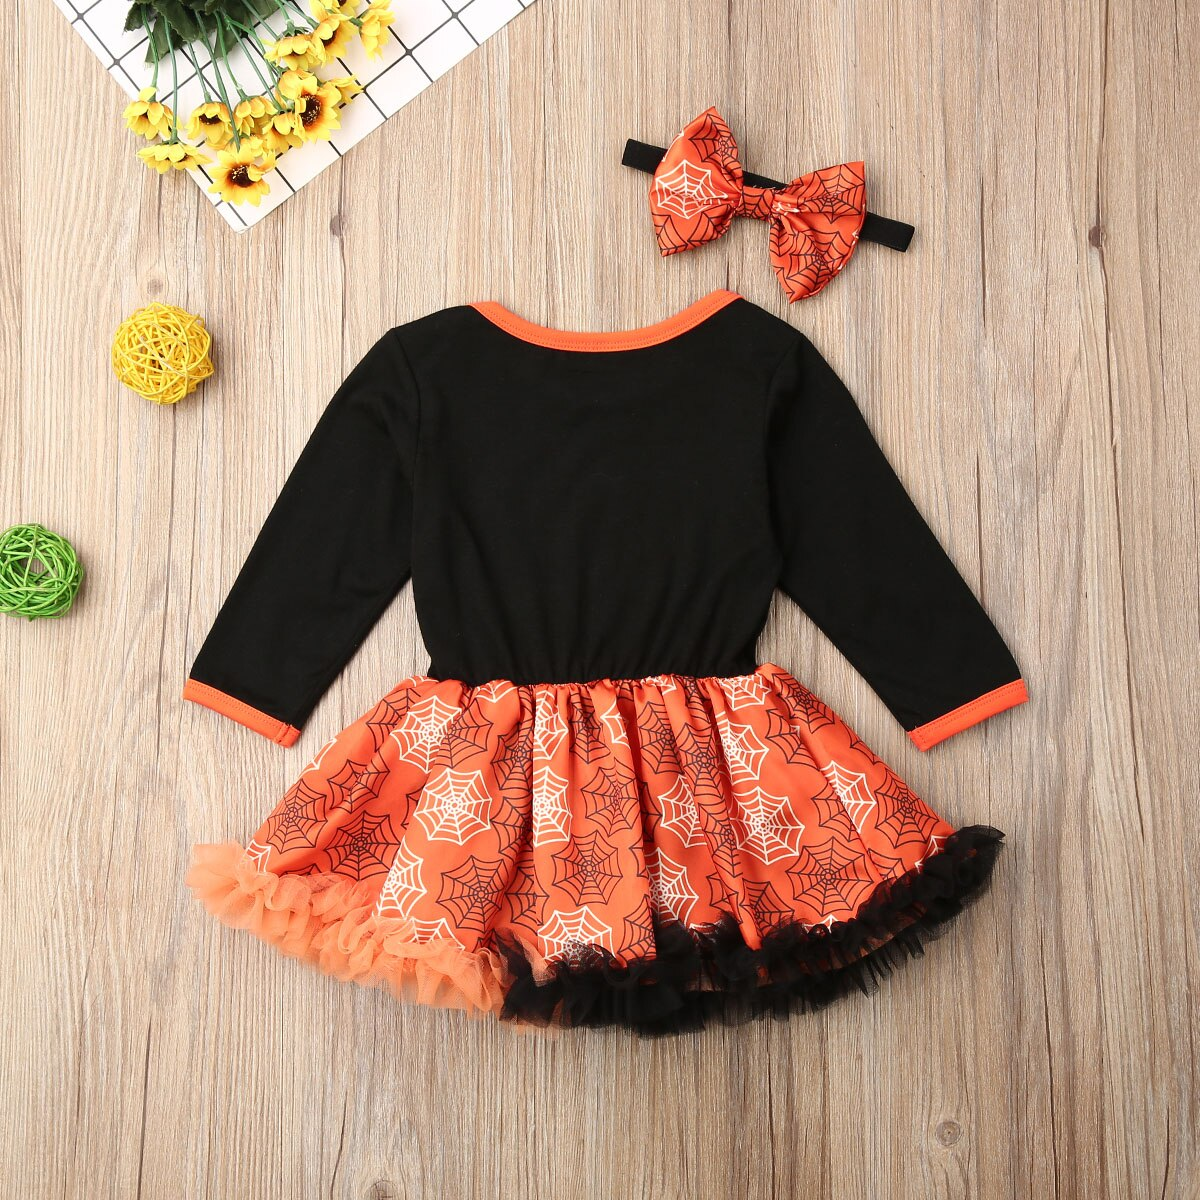 Infant Baby Toddler Girls Long Sleeve Halloween Pumpkin Ghost Party Dress Outfits